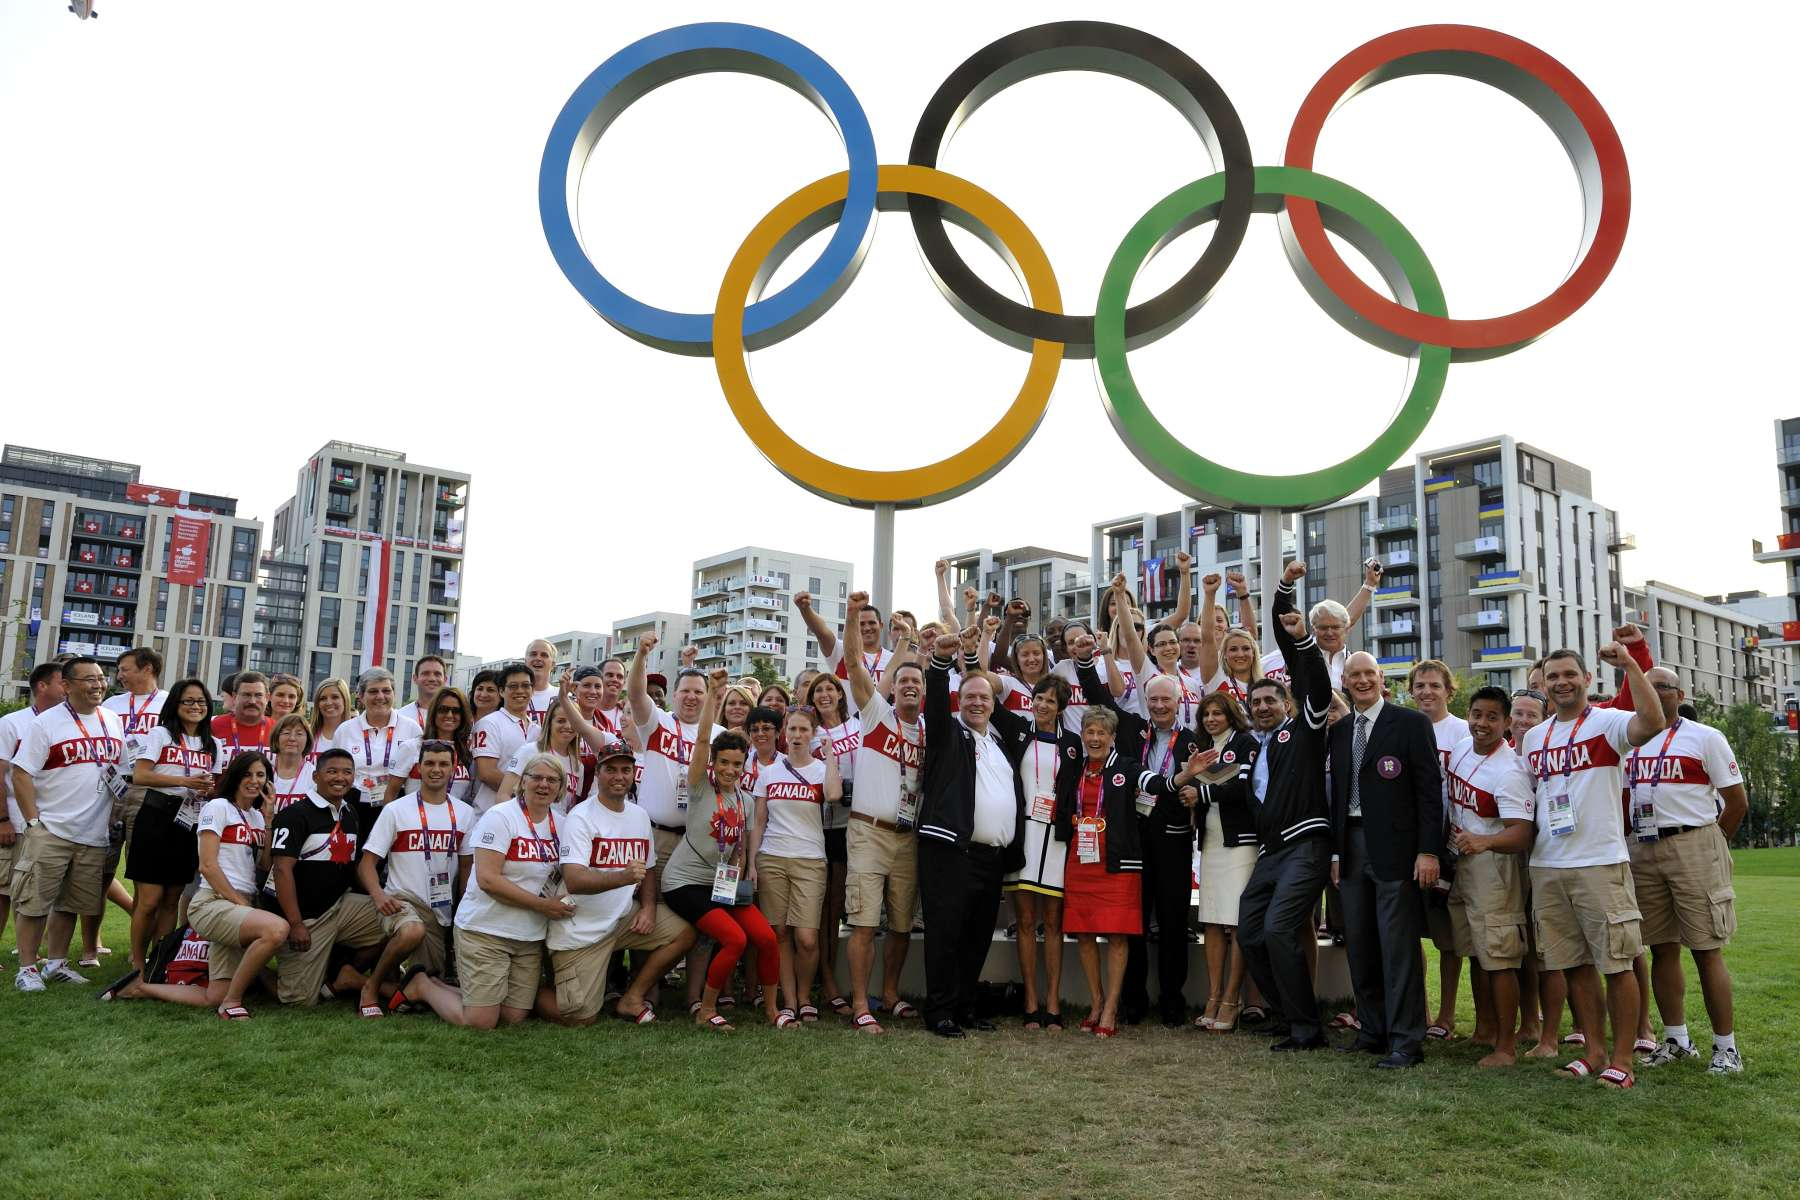 Official photo of Their Excellencies with Canadian Olympic Team athletes and coaching staff at the Athletes' Village.